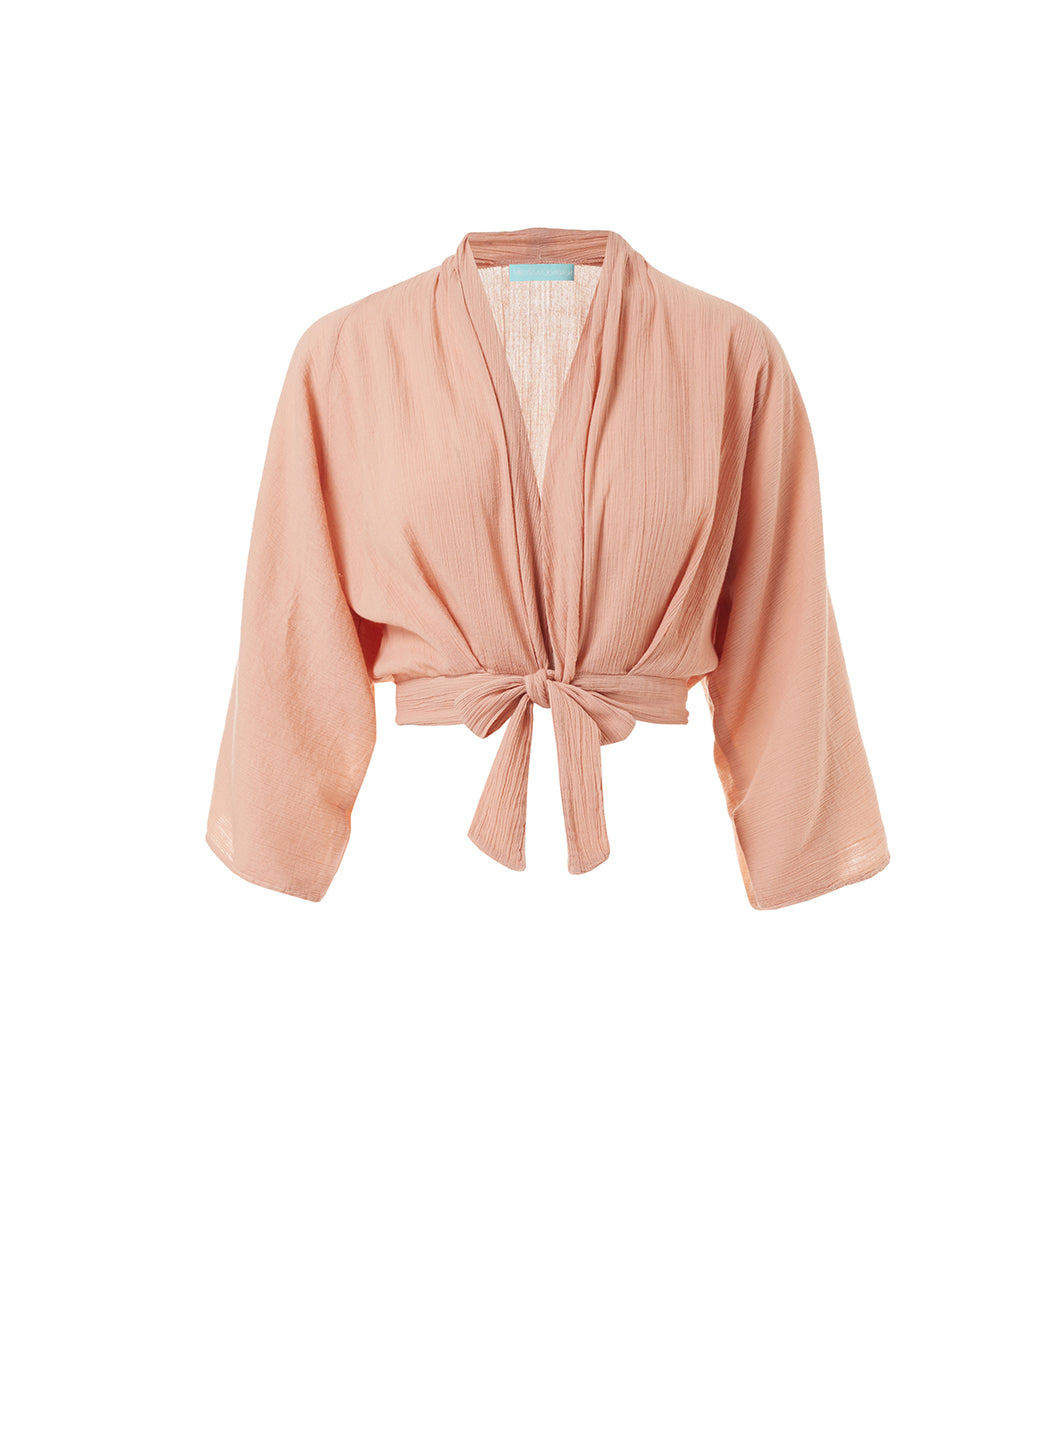 Mila Tan Tie-Front Cropped Blouse - Melissa Odabash New Arrivals